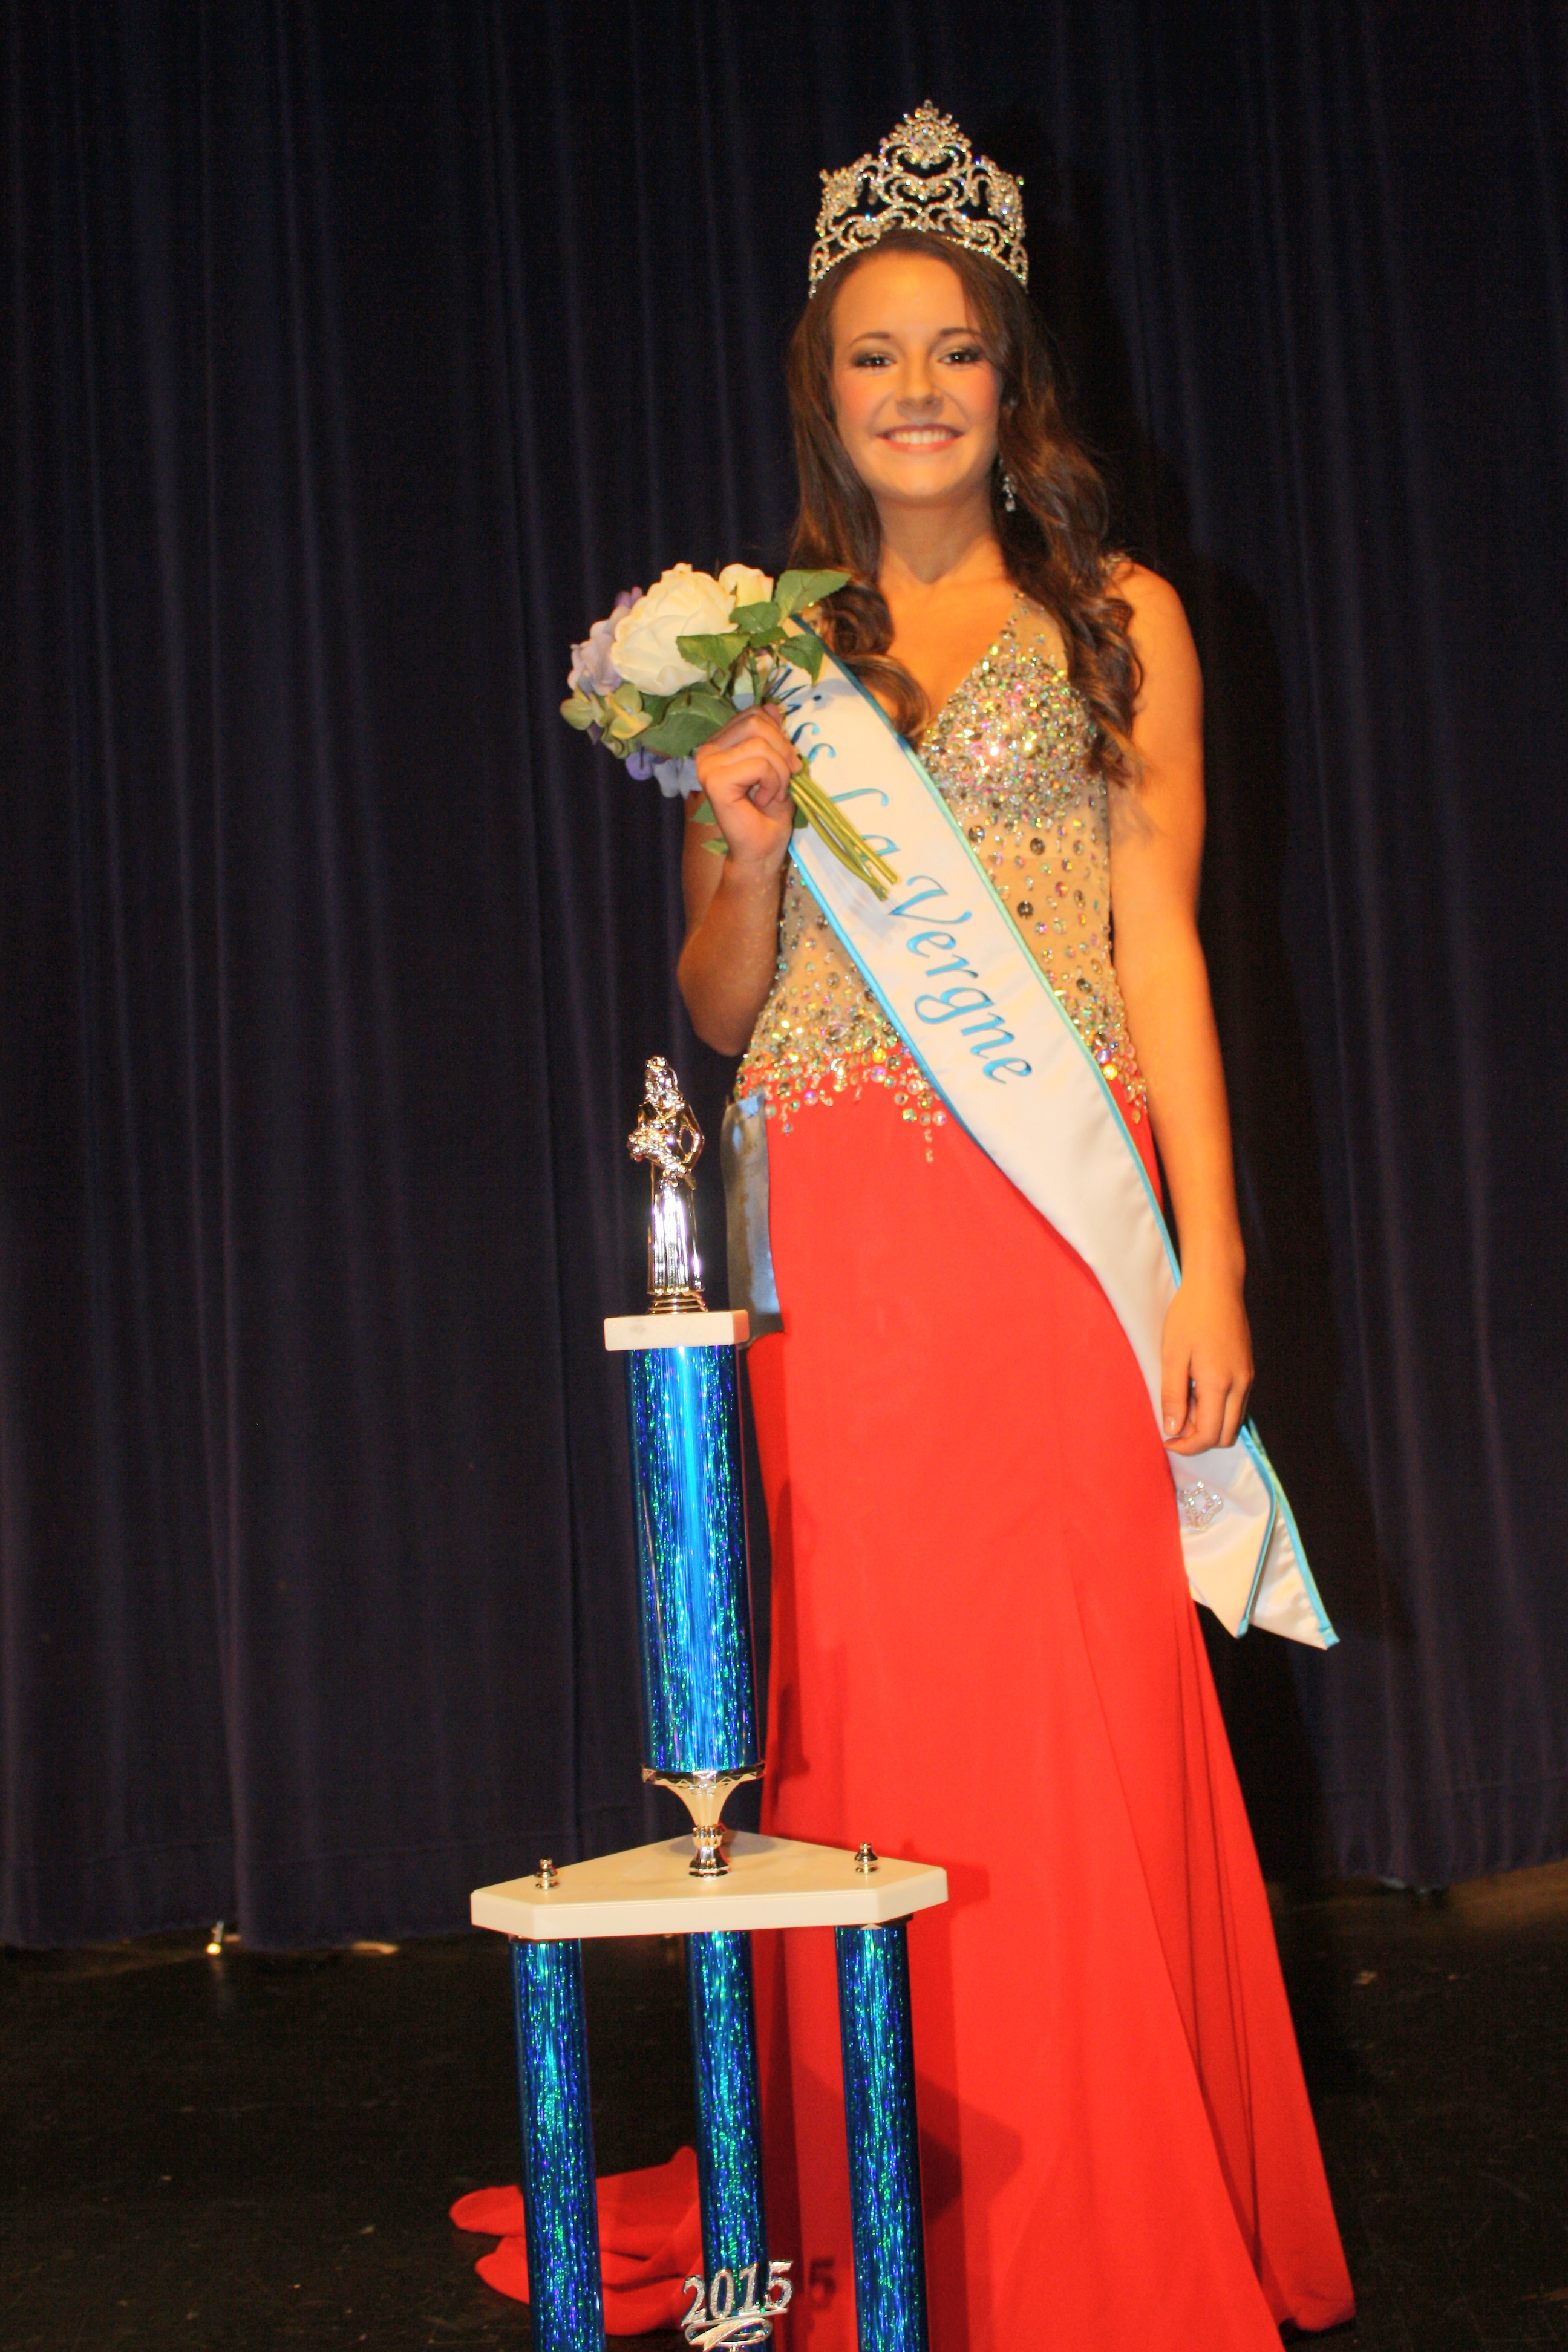 Miss La Vergne Crowned